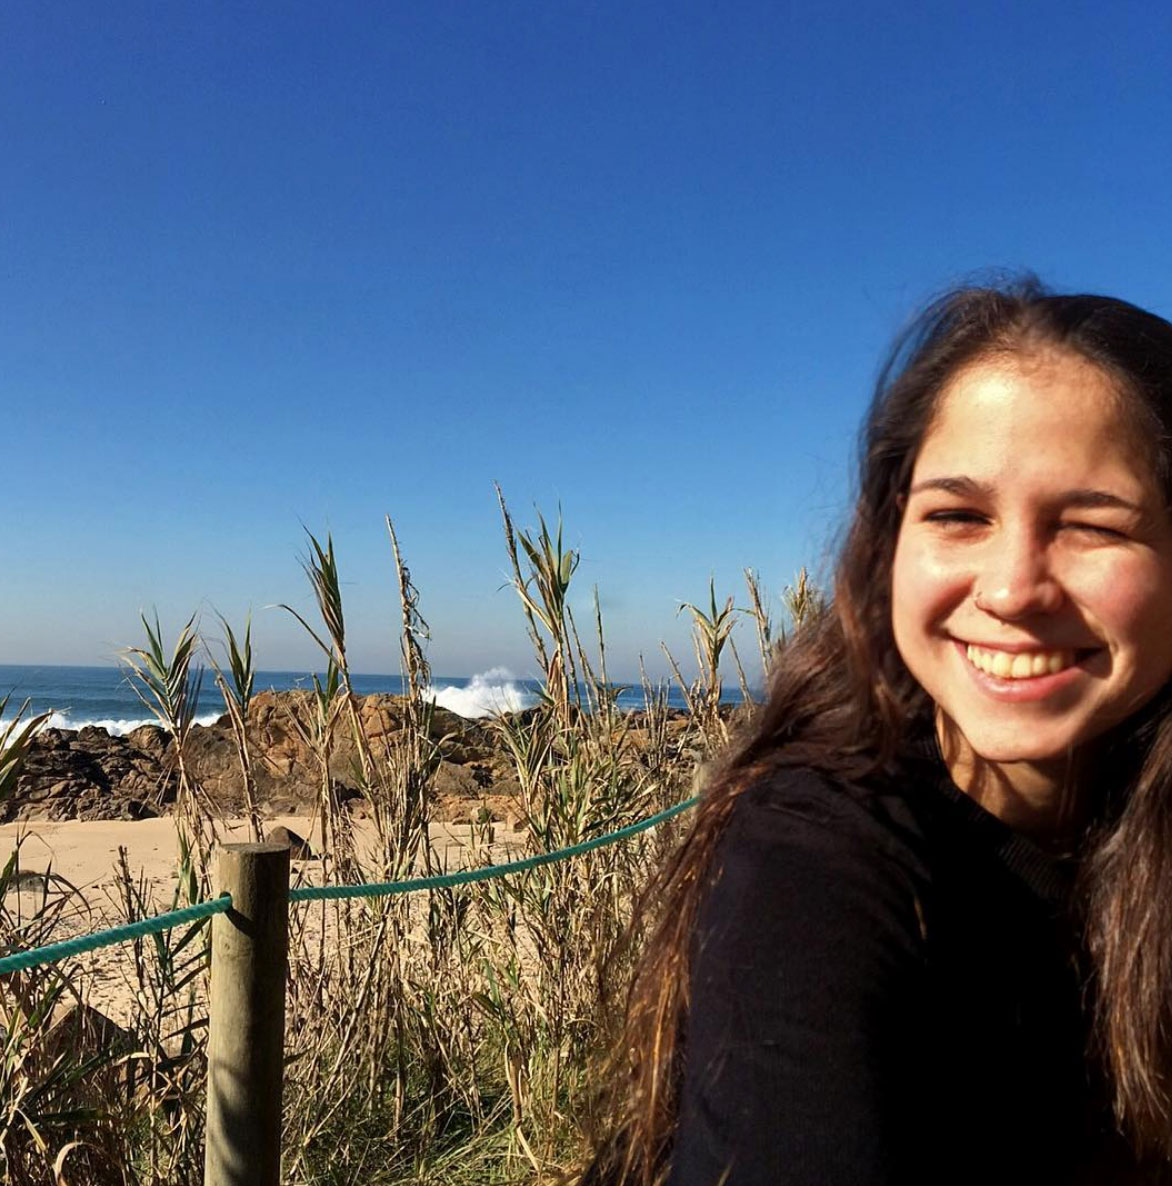 Selfie Panoramic with the ocean and the nature in San Paio, Portugal